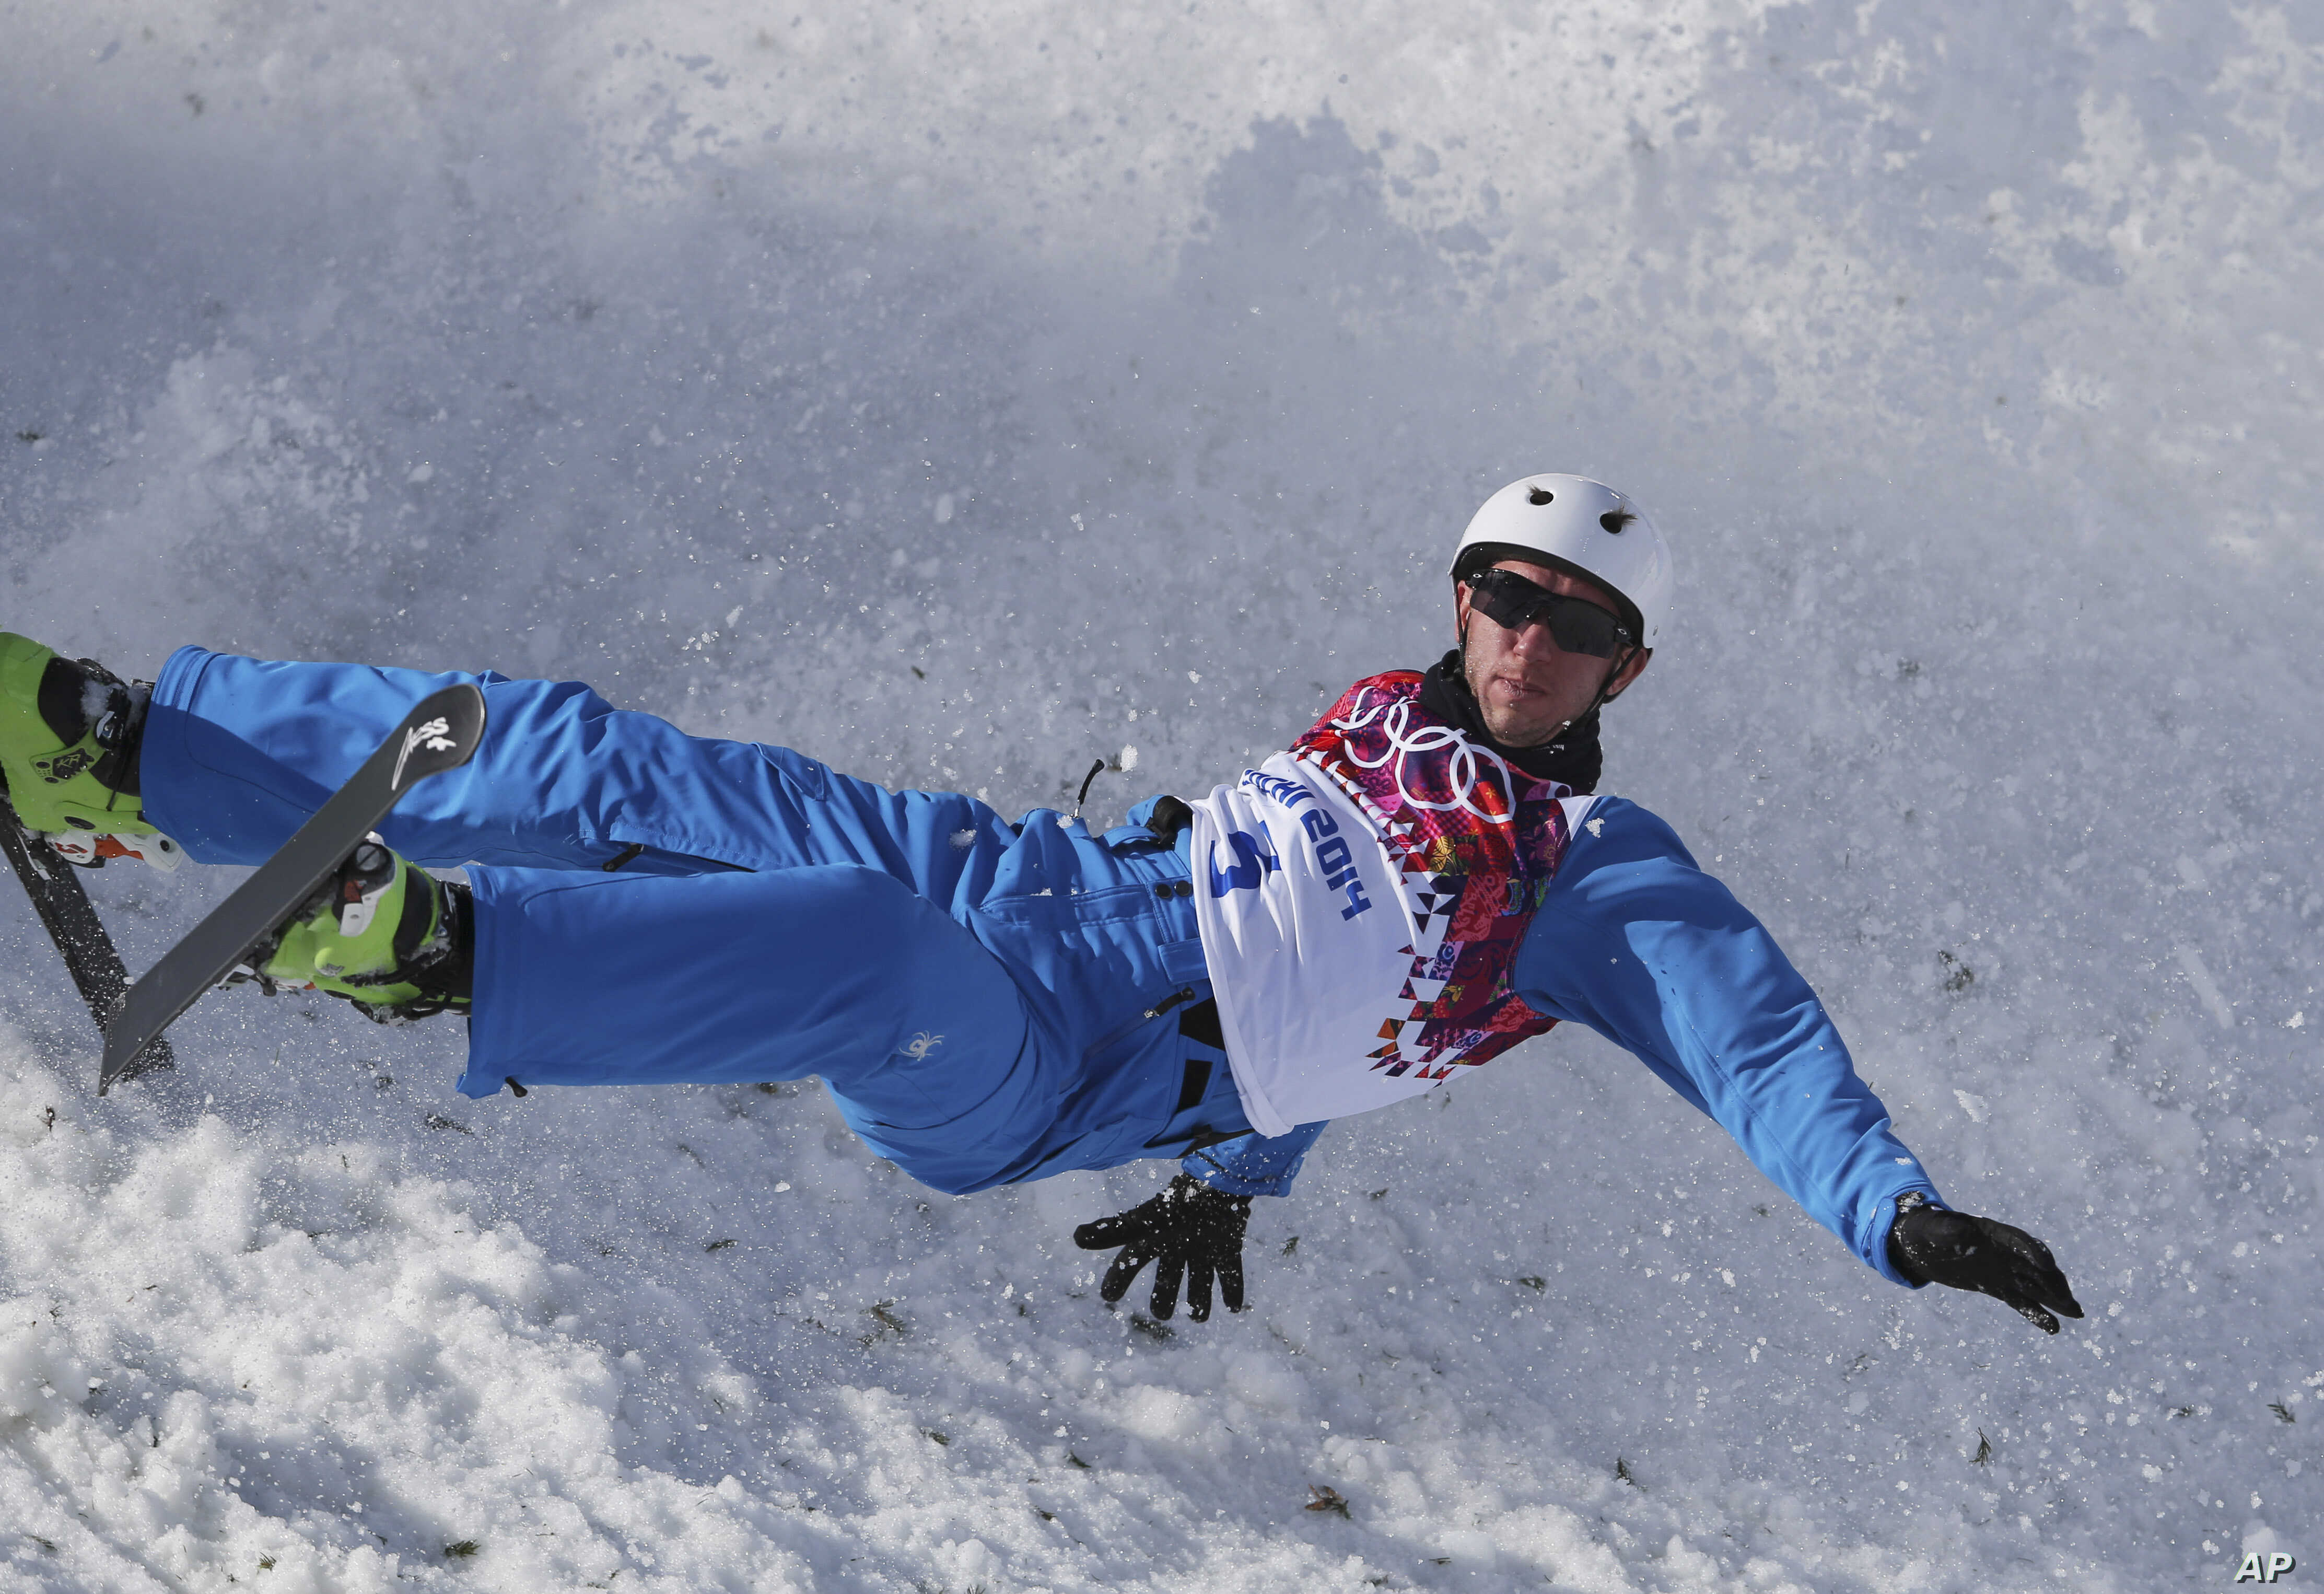 Anton Kushnir of Belarus crashes during men's freestyle skiing aerials  training at the Rosa Khutor Extreme Park, at the 2014 Winter Olympics, Wednesday, Feb. 12, 2014, in Krasnaya Polyana, Russia. (AP Photo/Sergei Grits)